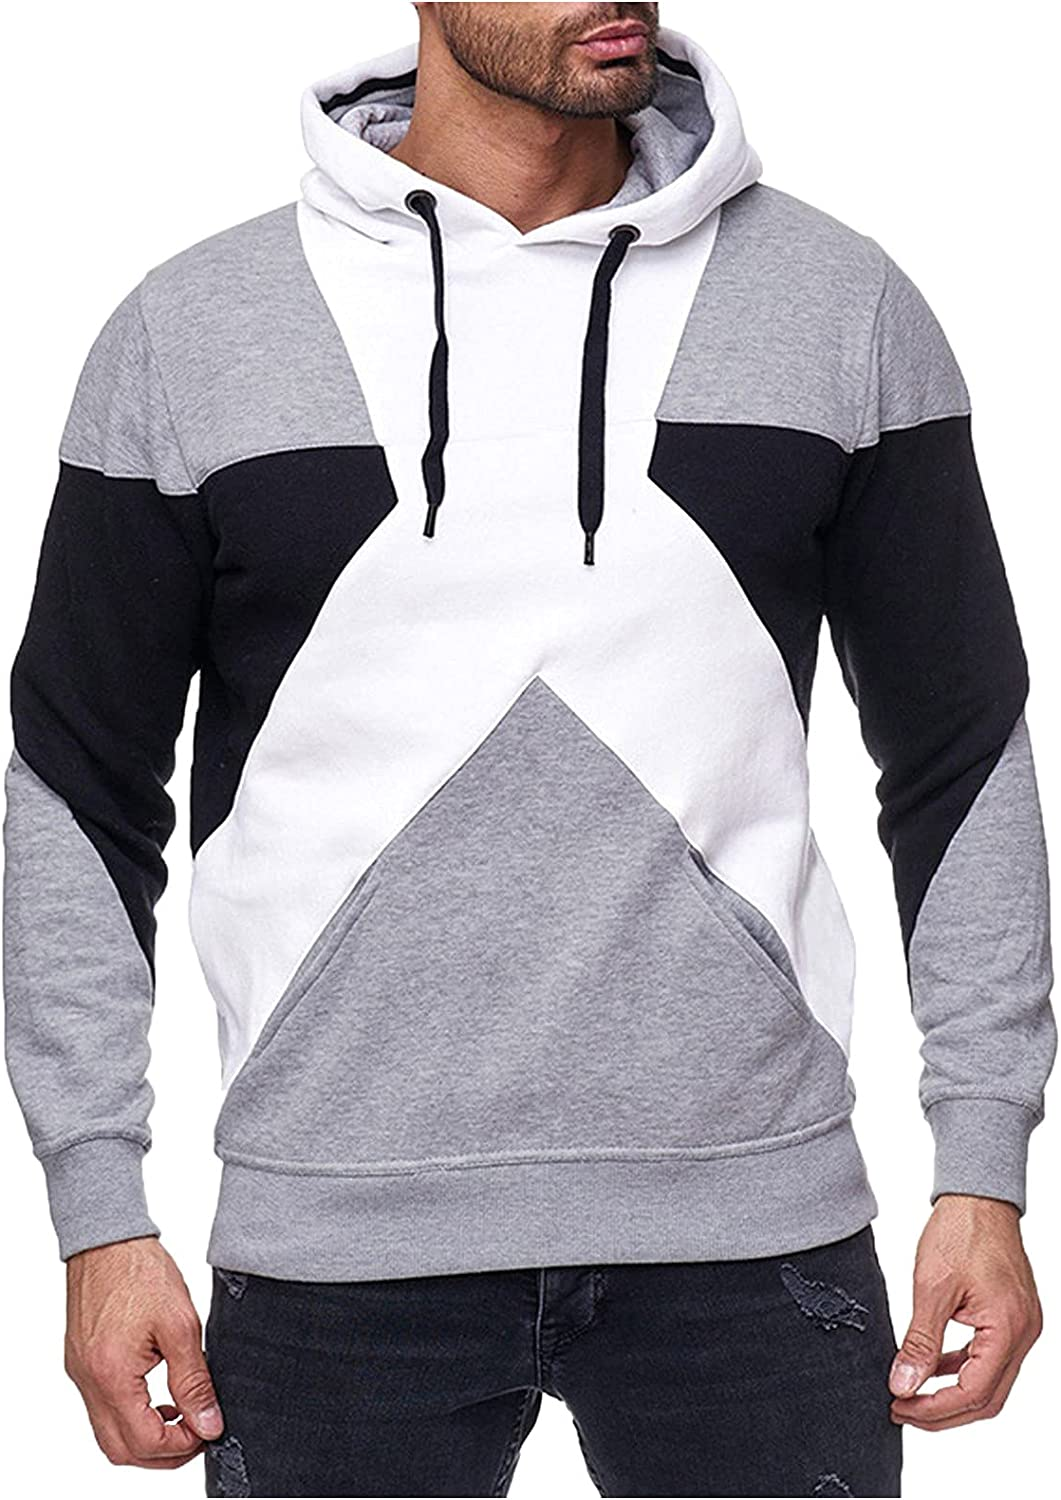 HONGJ Patchwork Hoodies for Mens, 2021 Fall Athletic Casual Drawstring Slim Fit Workout Sports Hooded Sweatshirts